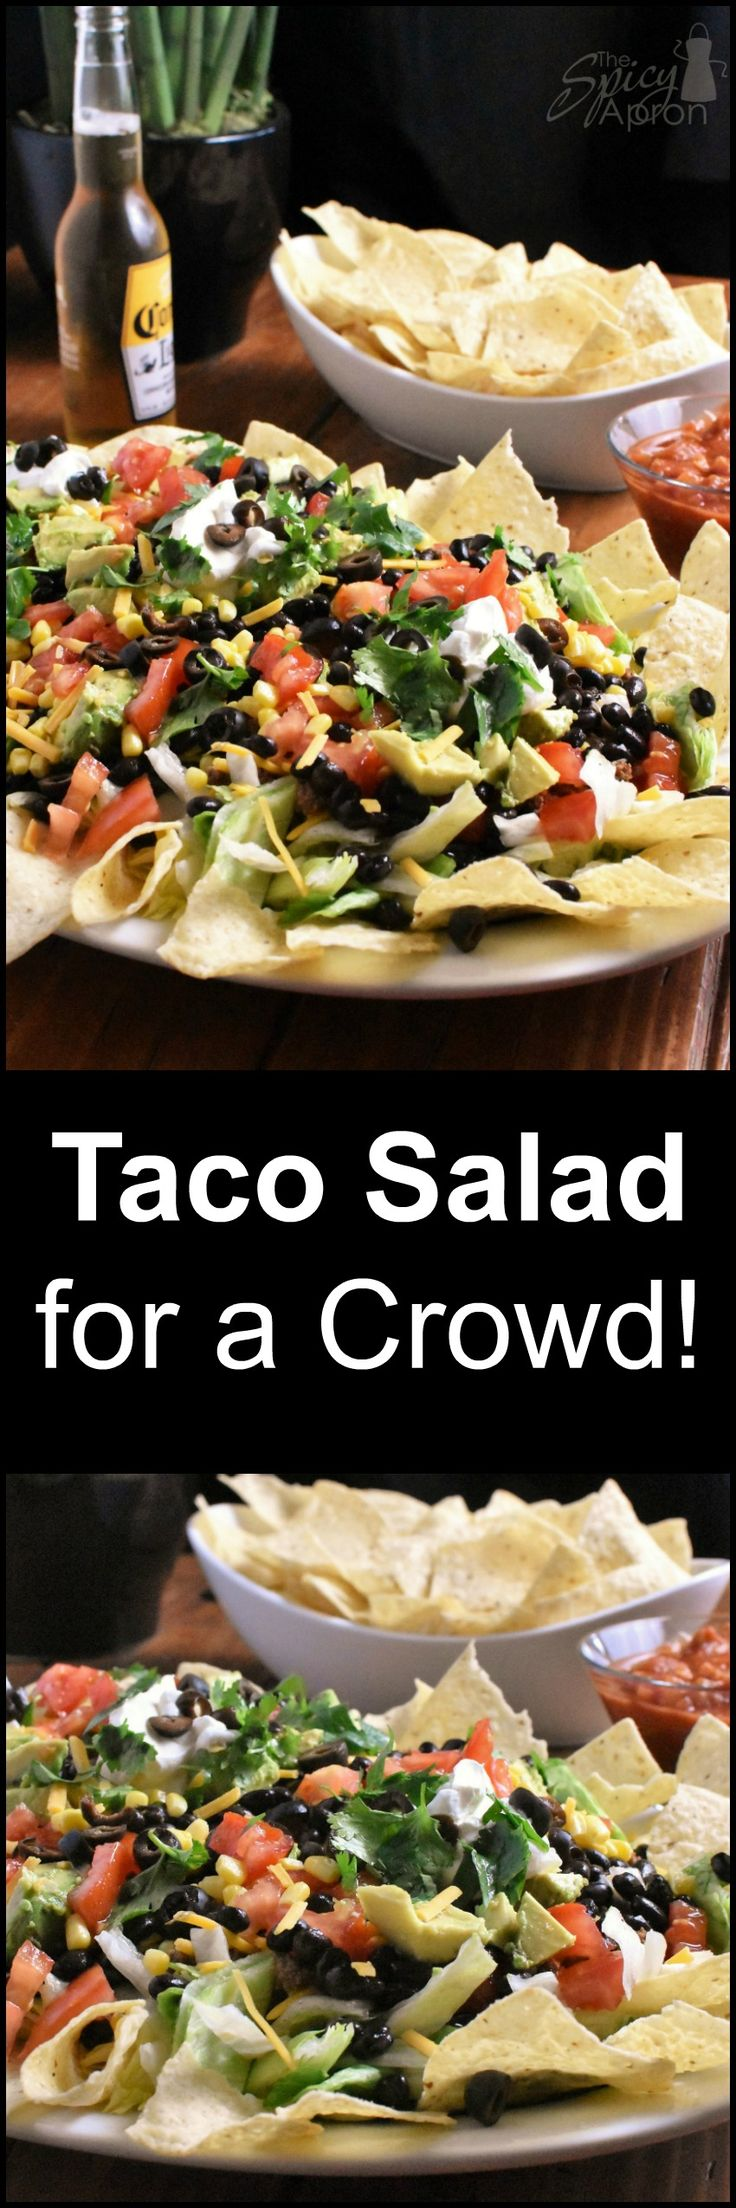 When you need to feed a crowd in a hurry! This Beefy Taco Salad does the trick! You won't believe how good (and easy) it is!